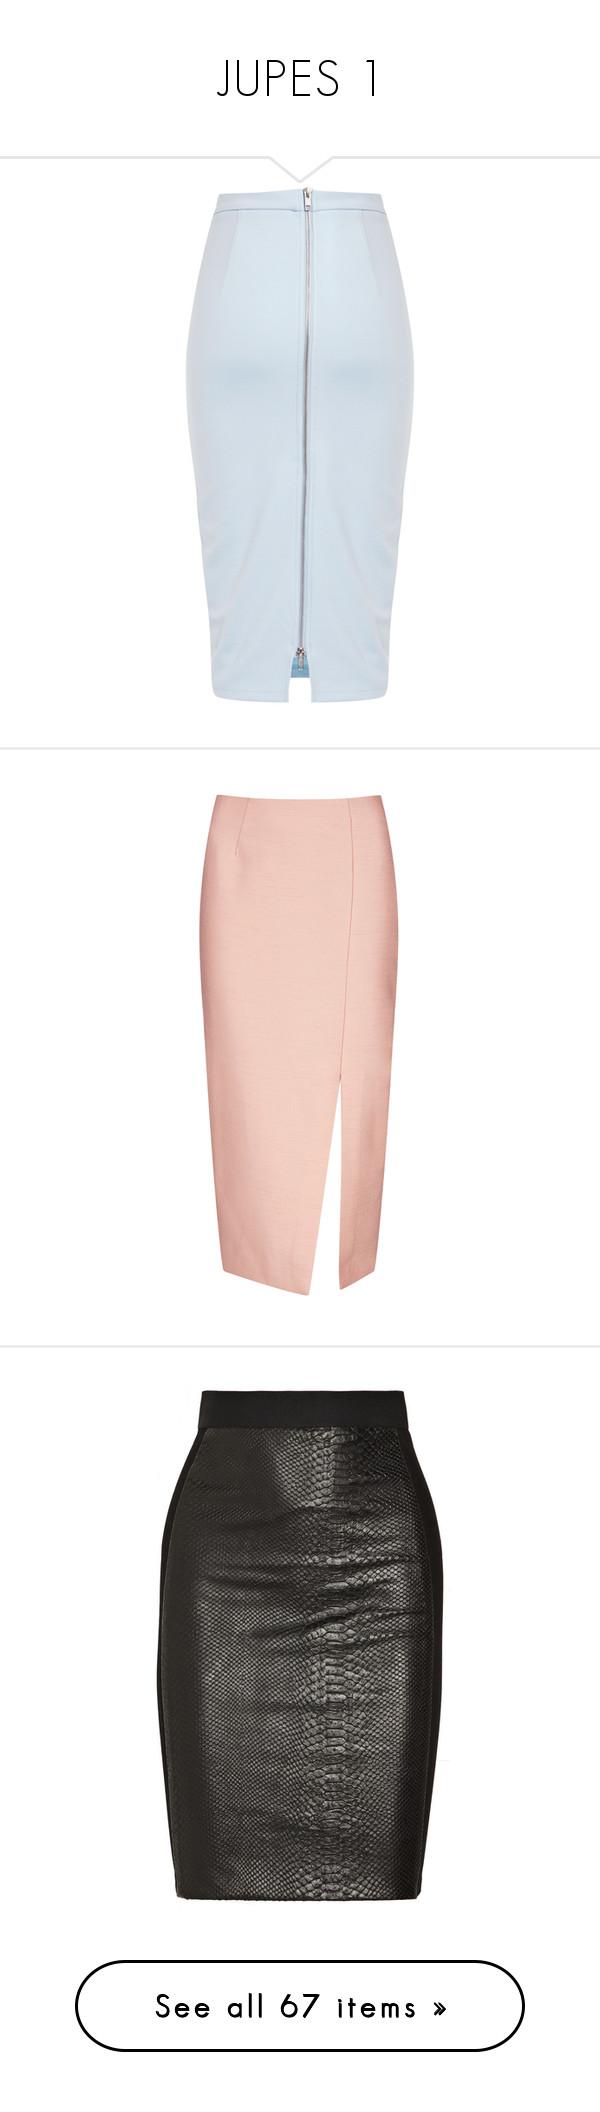 """JUPES 1"" by macopa ❤ liked on Polyvore featuring skirts, blue skirt, faldas, pencil skirt, pink, saias, knee length pencil skirt, pink knee length skirt, pink pencil skirt and pink skirt"